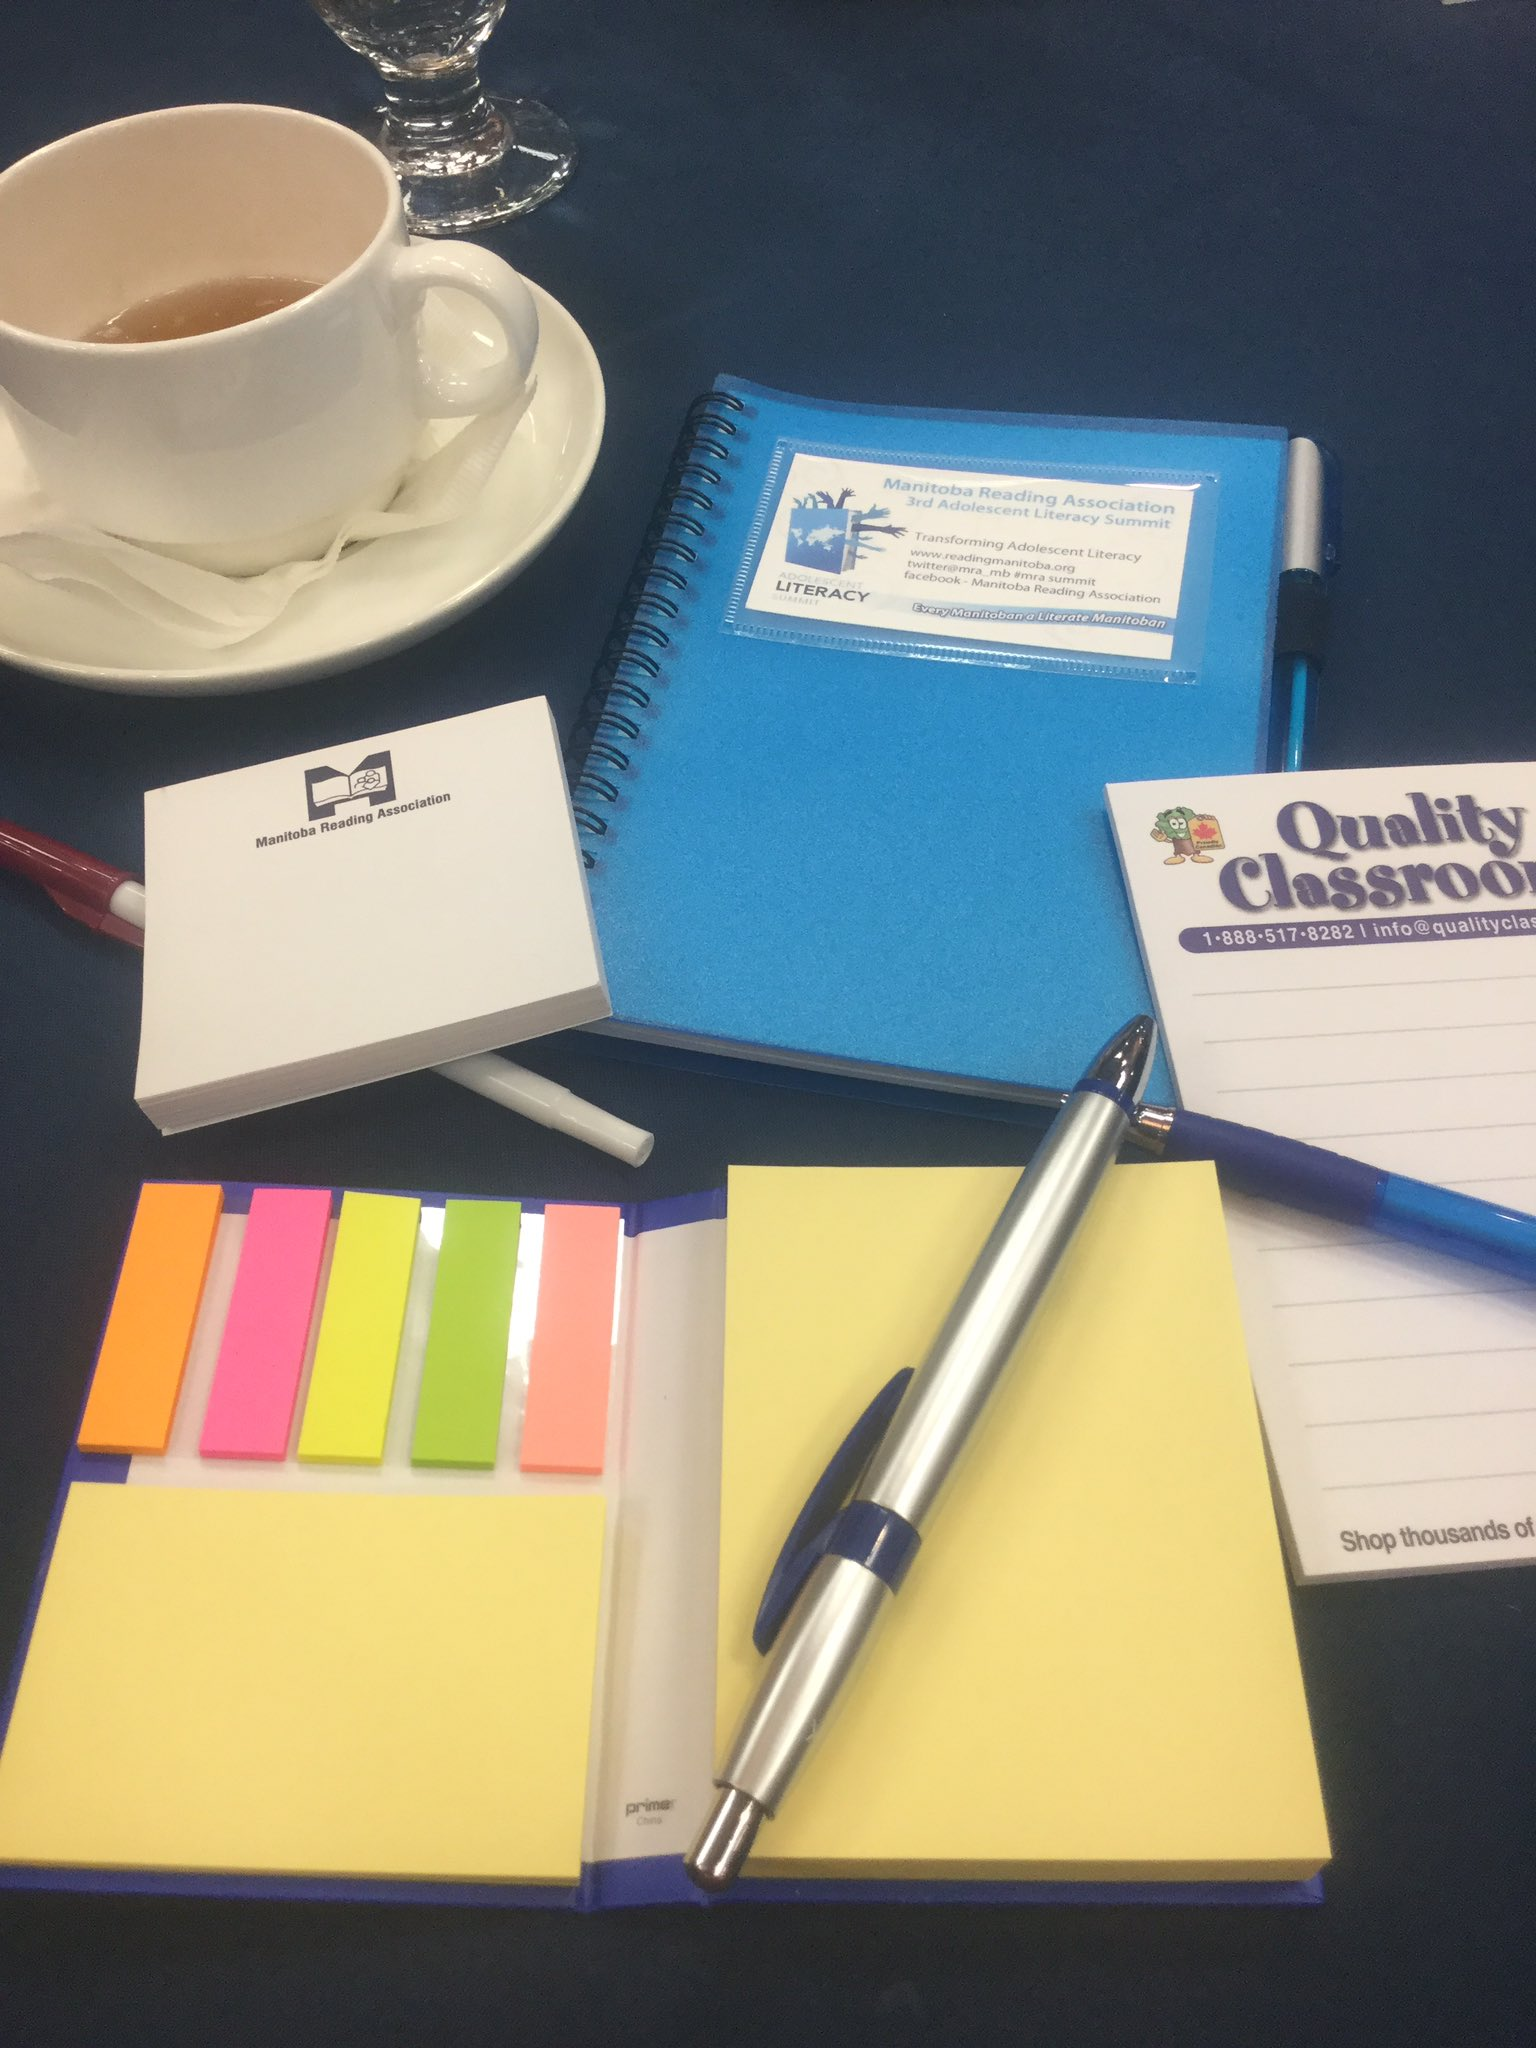 MRA knows how to woo teachers: pens, journals , and sticky notes!  It's going to be a productive day. #mrasummit https://t.co/rftGlneeA3